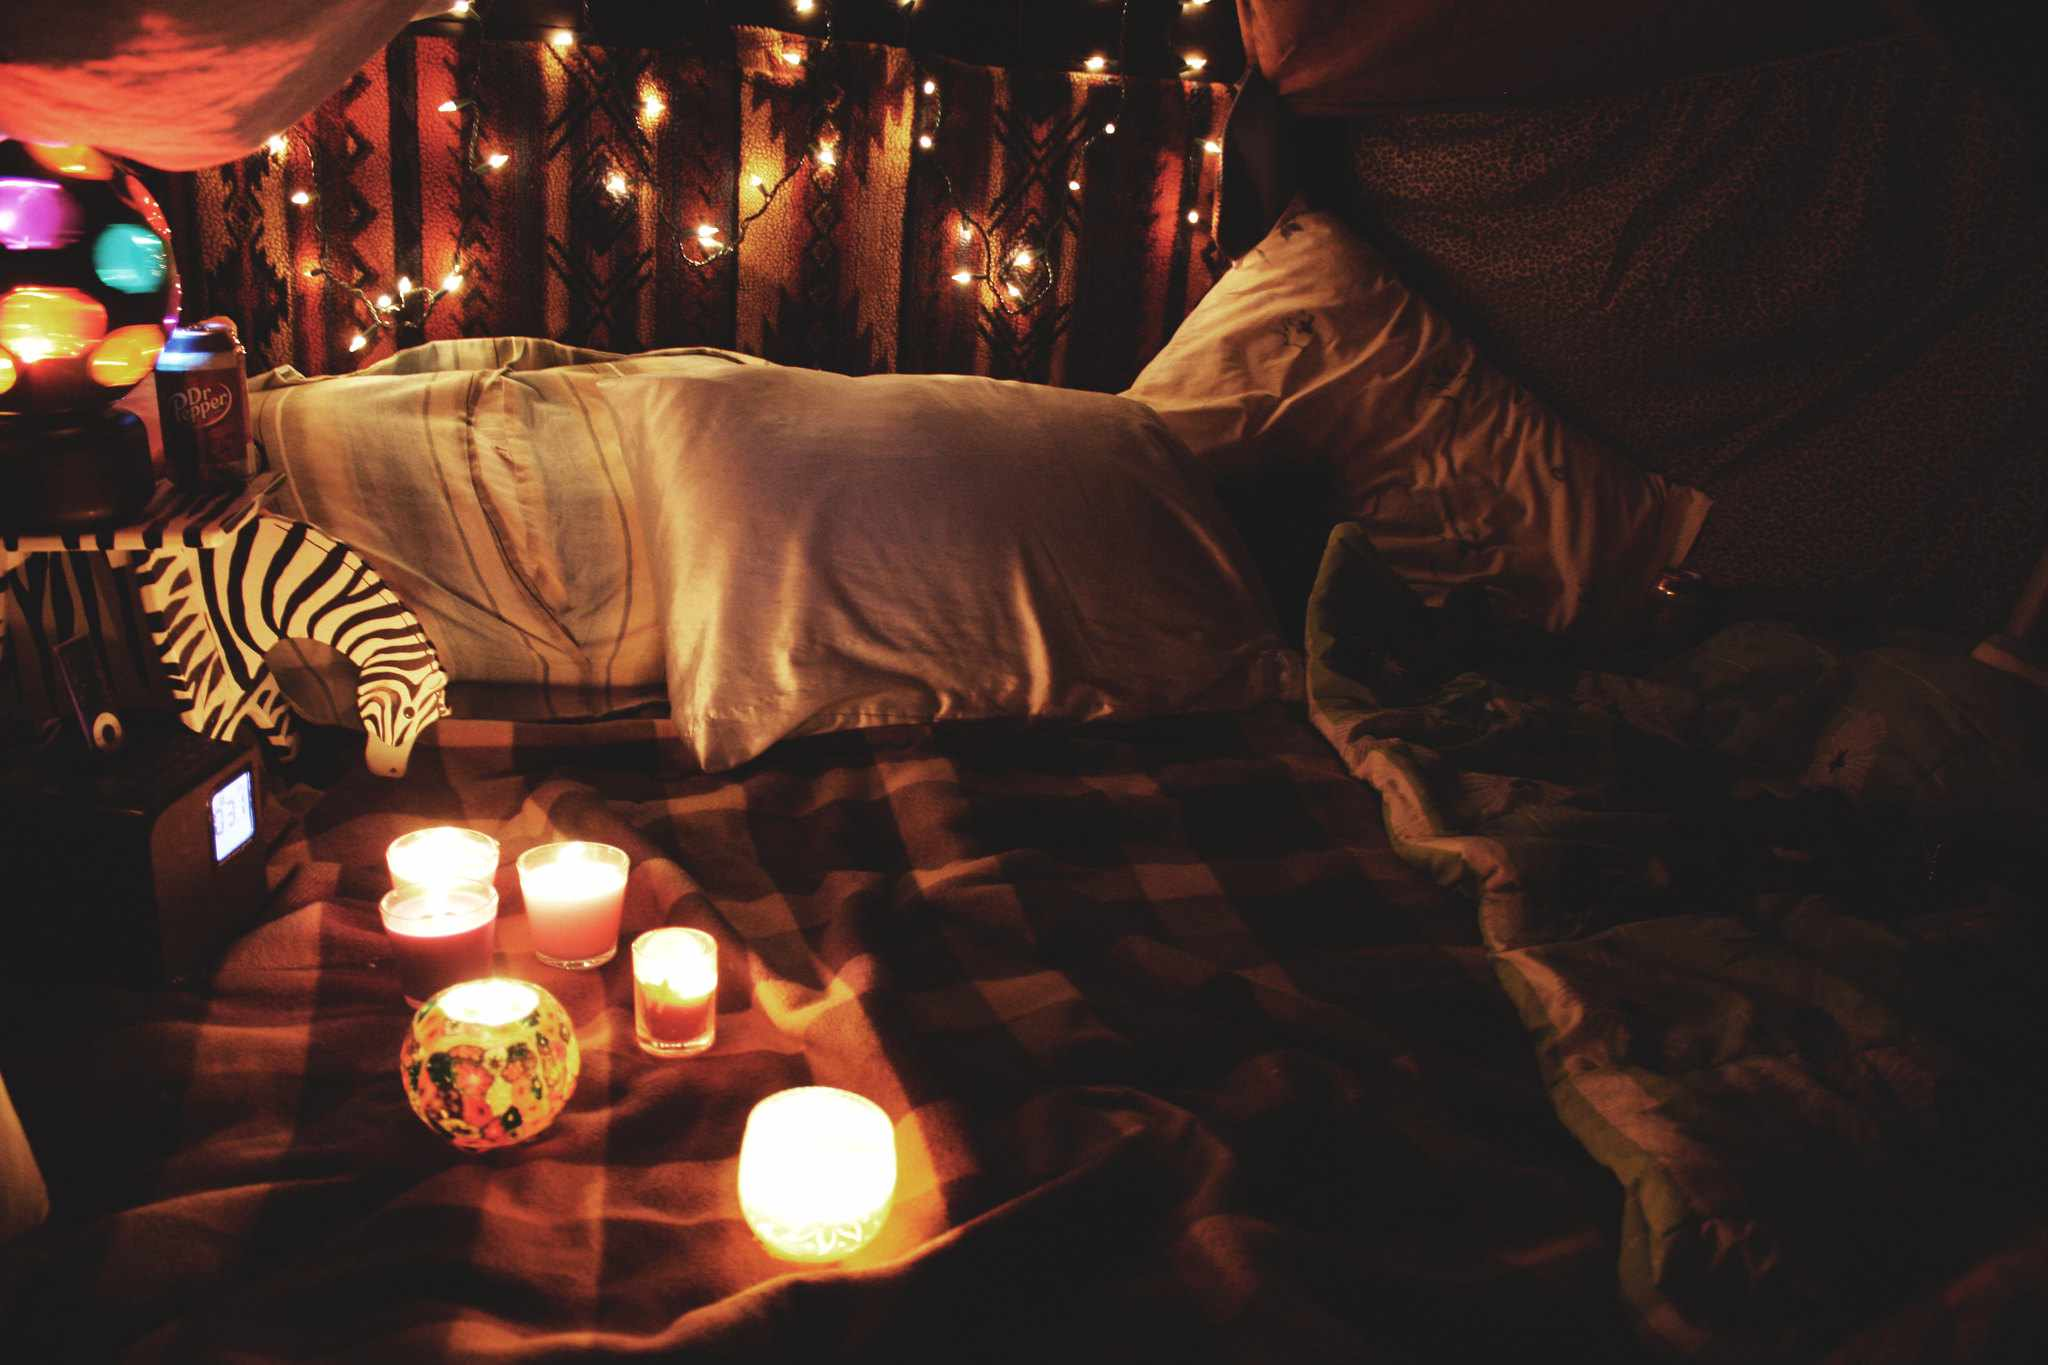 Create A Cozy Escape And Save On Heating With A Grown Up Blanket Fort